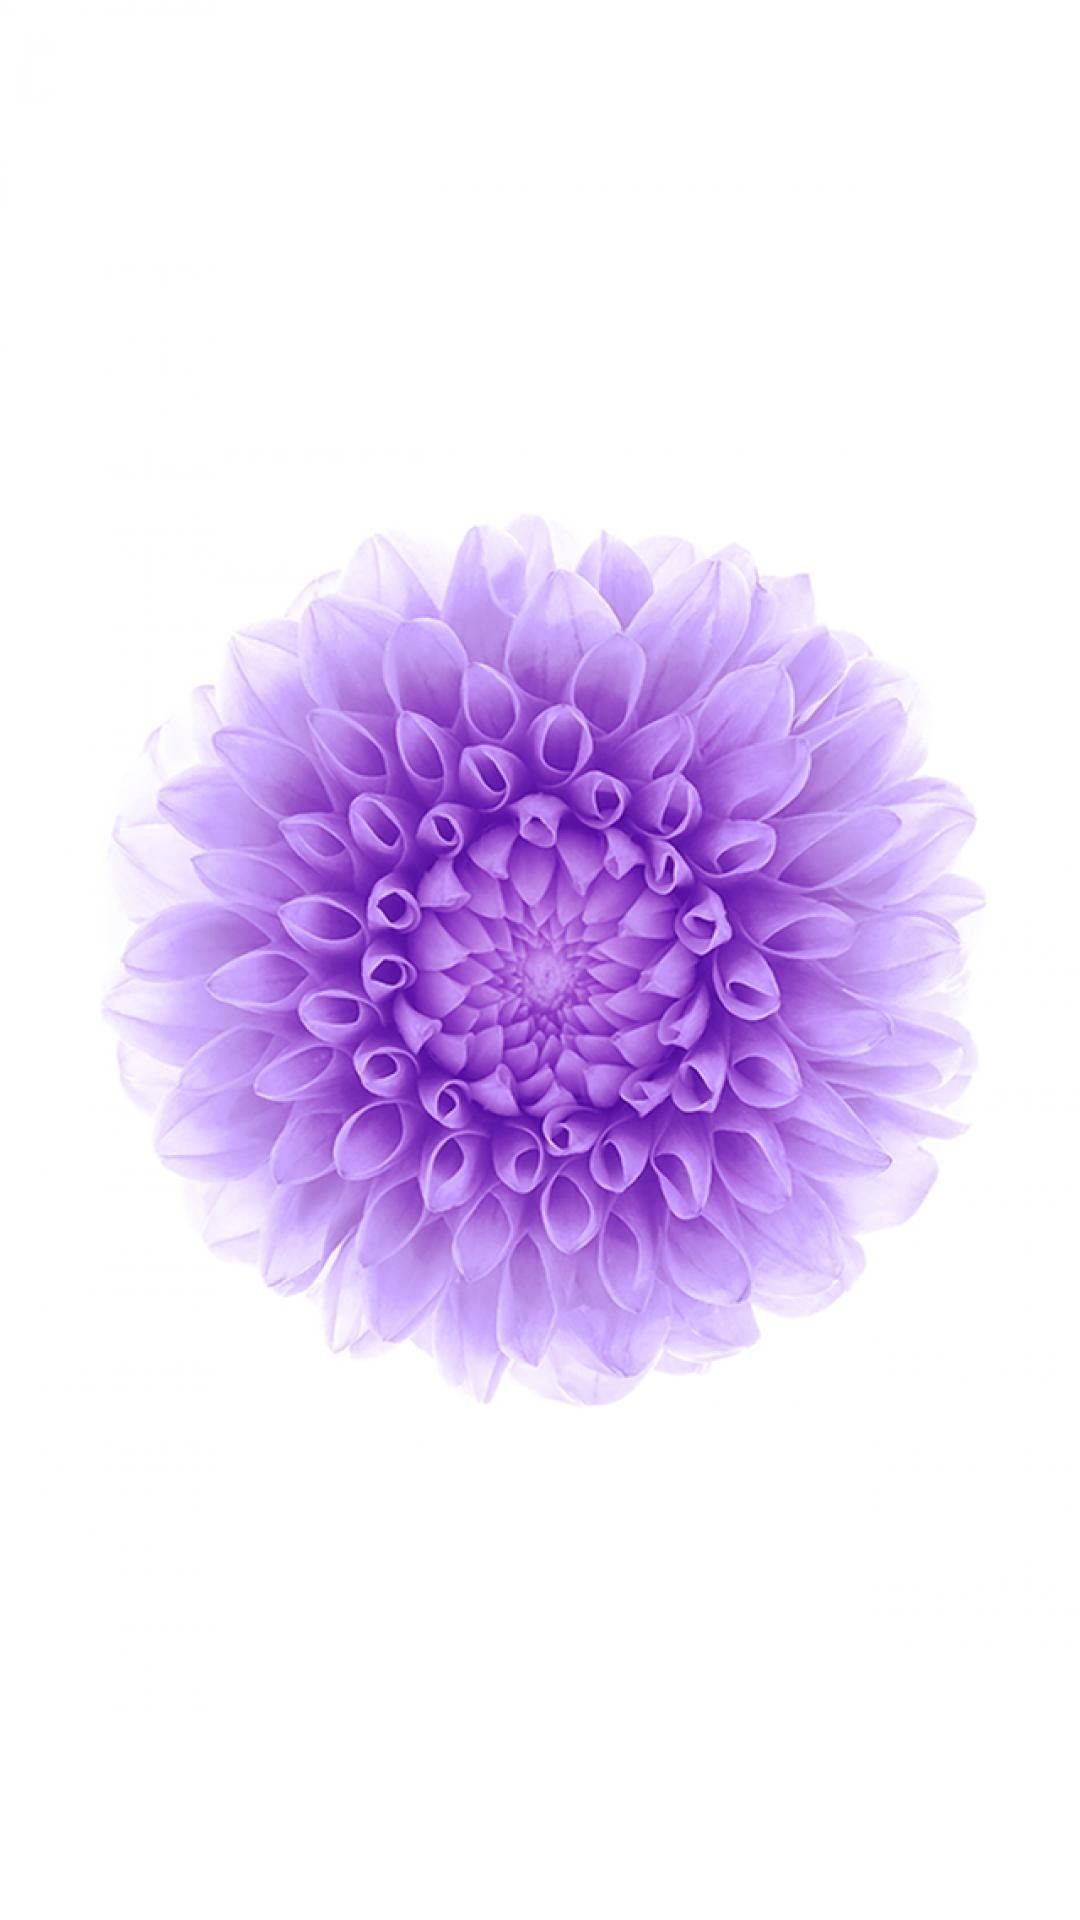 Iphone6wallpaper Purple Flower